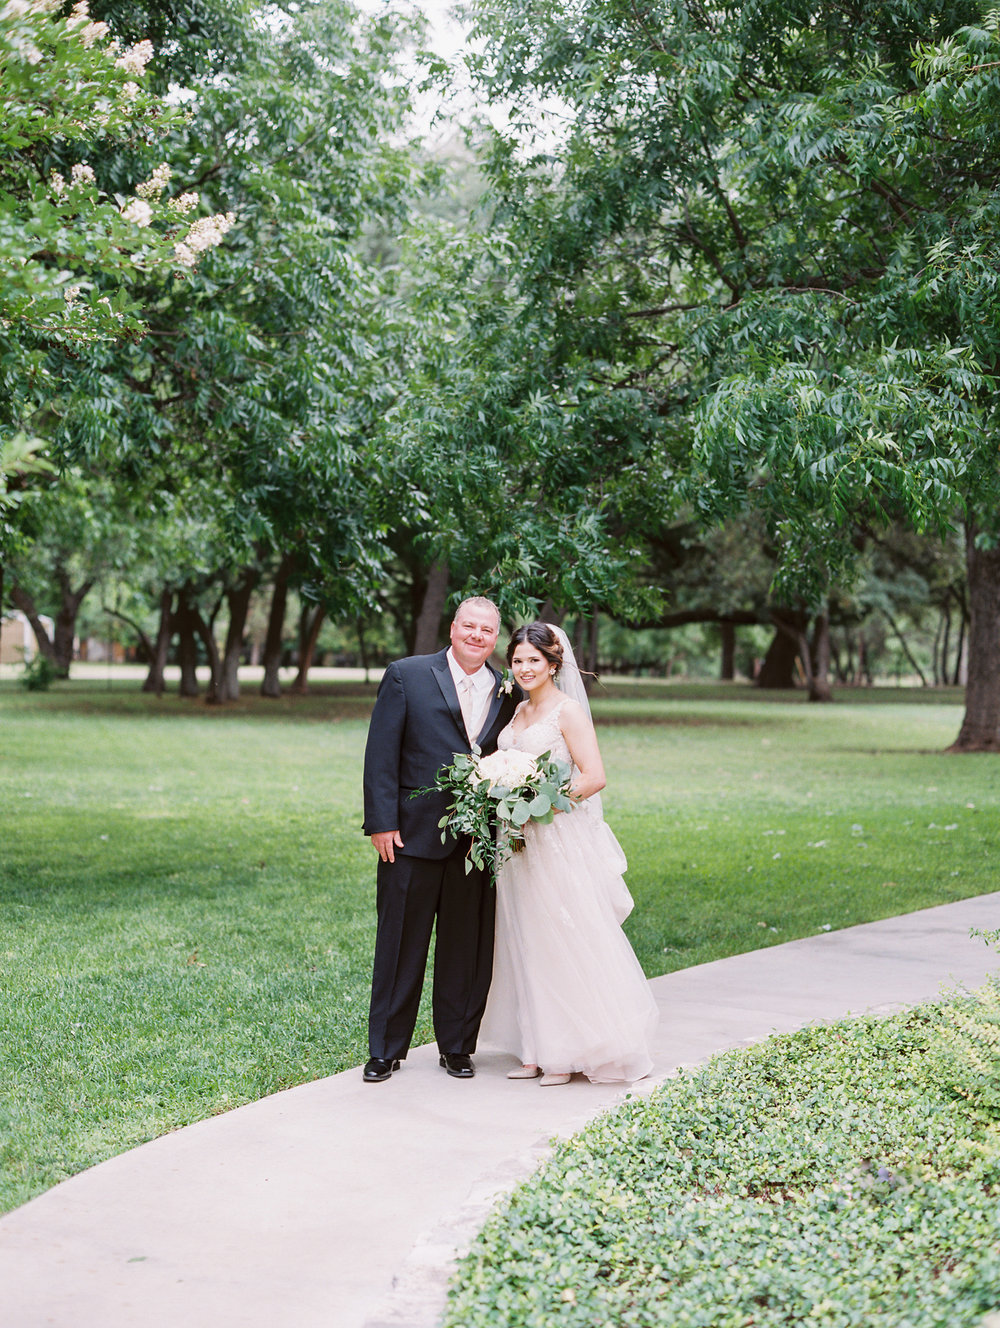 Elegant Spring Vineyard Wedding | Film Wedding Photographer | Austin Wedding Photographer | Bride and Father Sweet Moment | Britni Dean Photography // britnidean.com